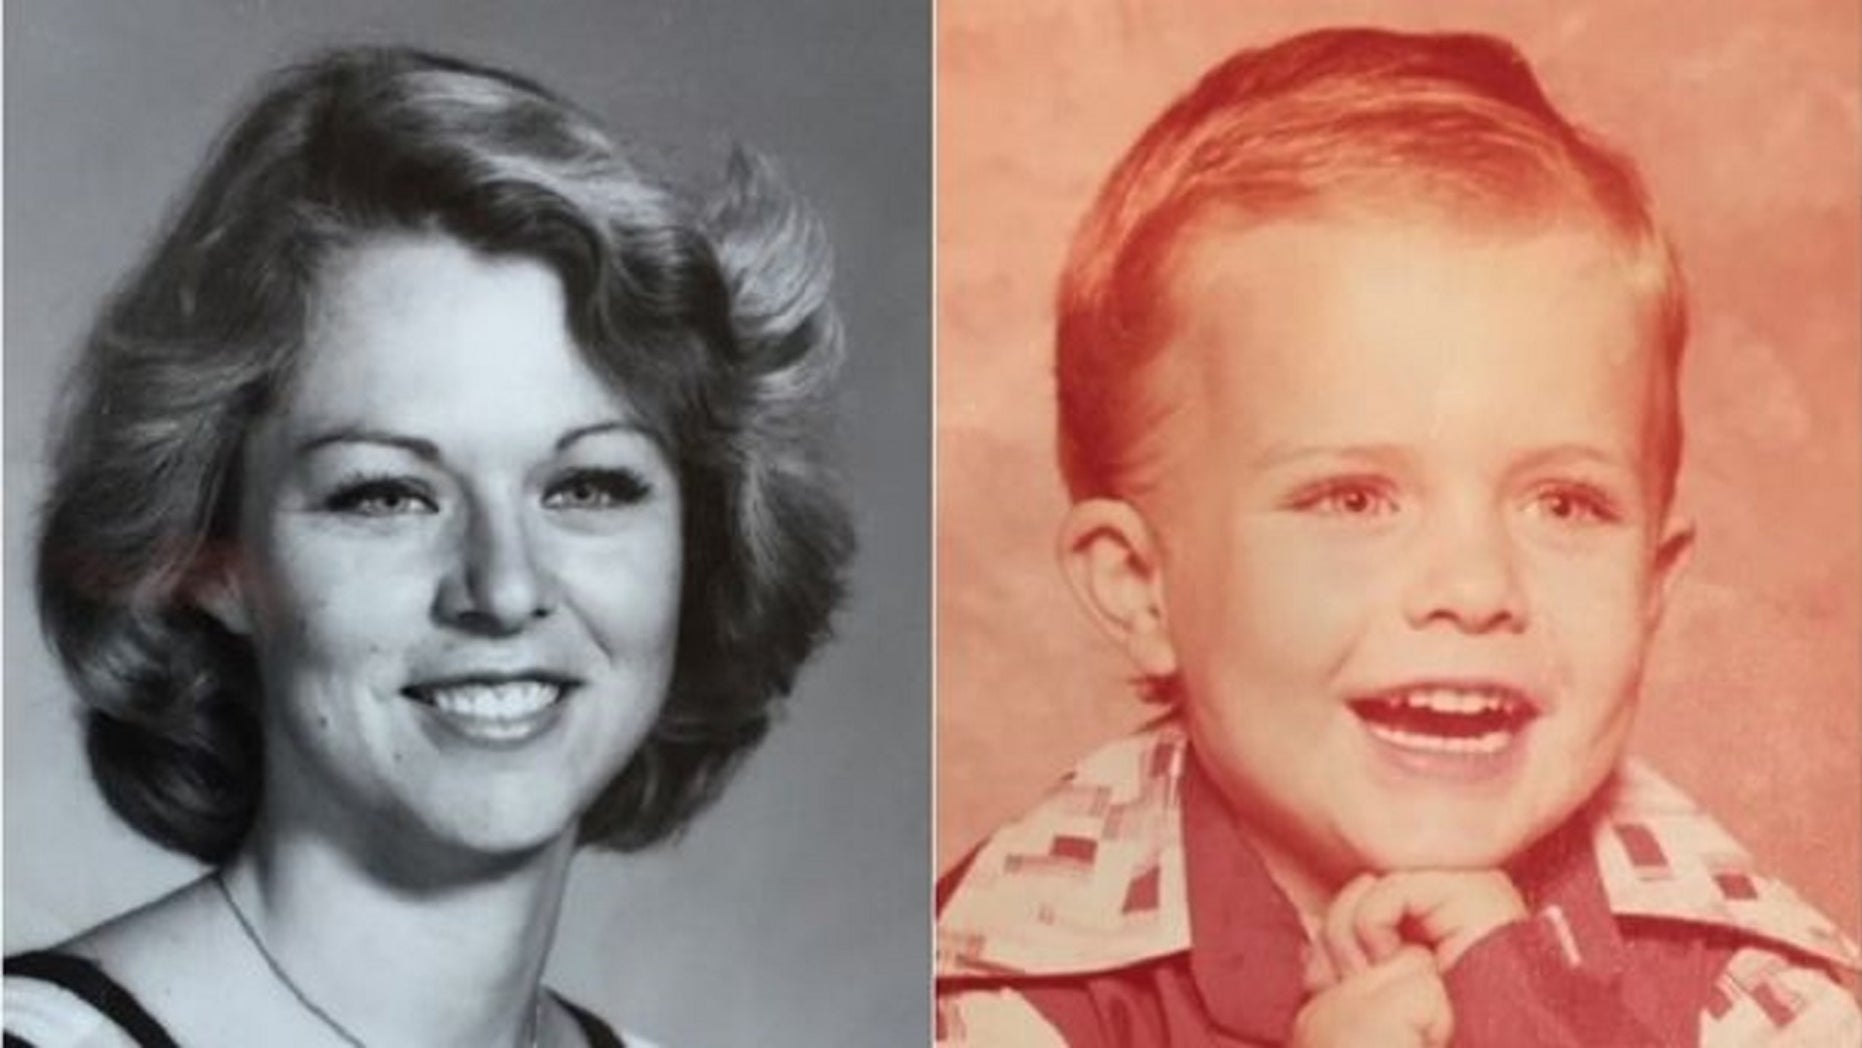 Rhonda Wicht, 24, and her 4-year-old son Donald Wicht, were found dead in her Simi Valley apartment on Nov. 11, 1978.